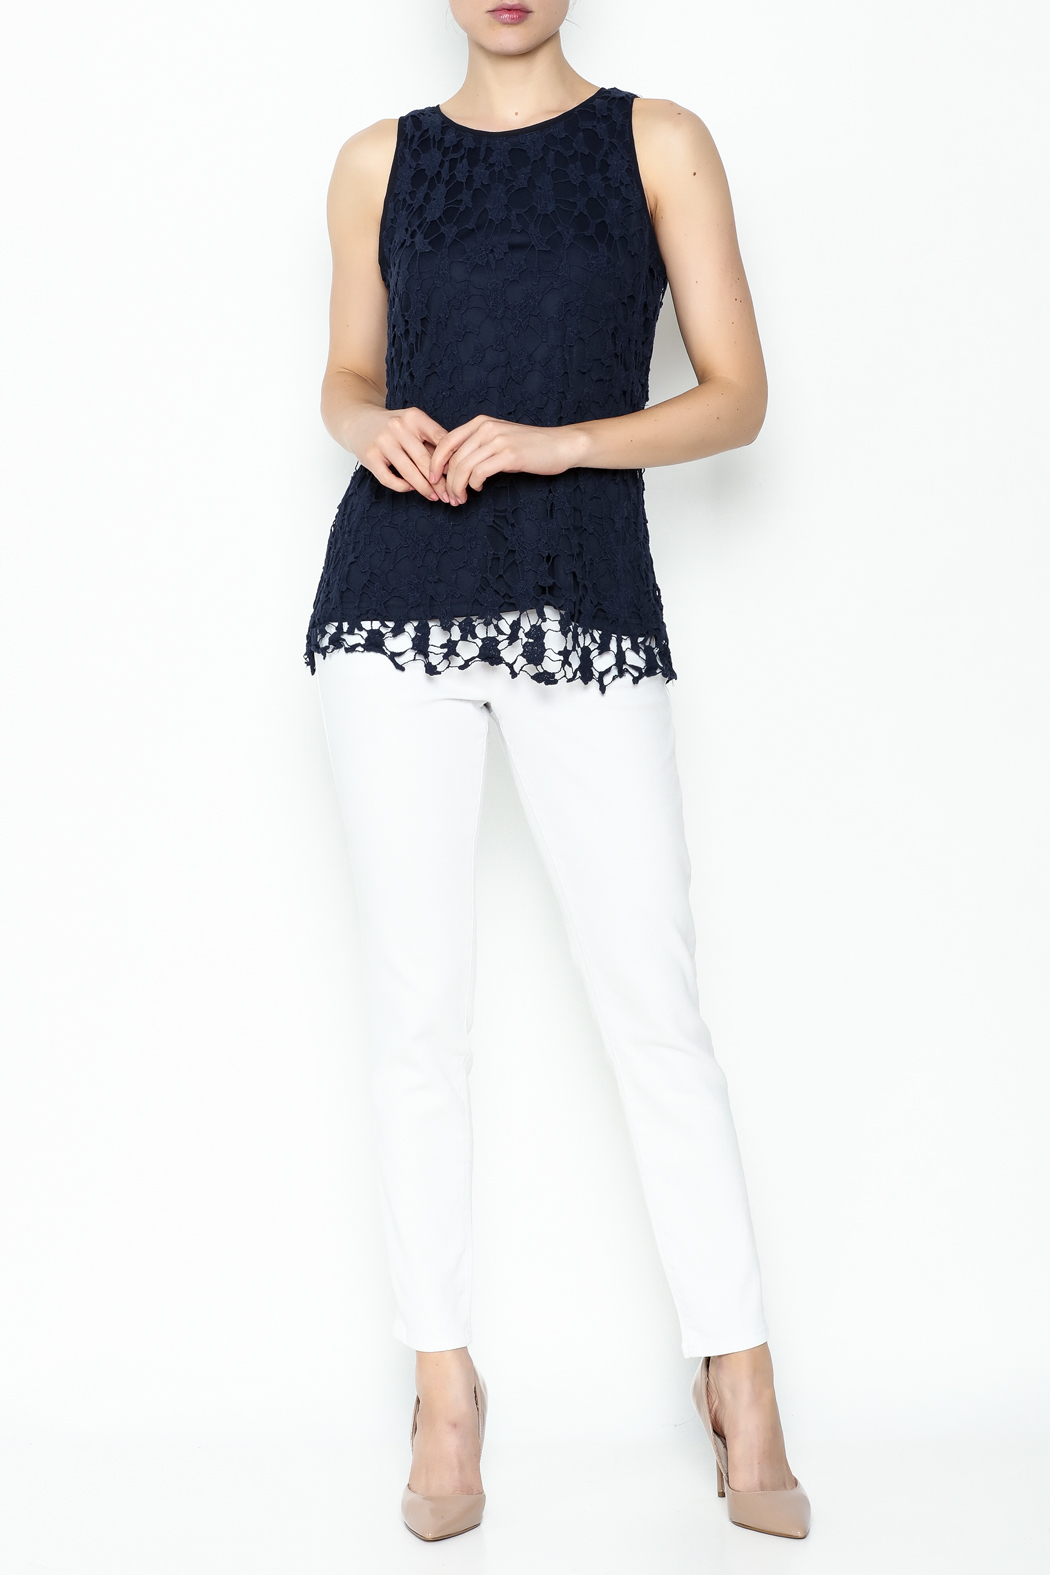 Keren Hart Lace Sleeveless Top - Side Cropped Image